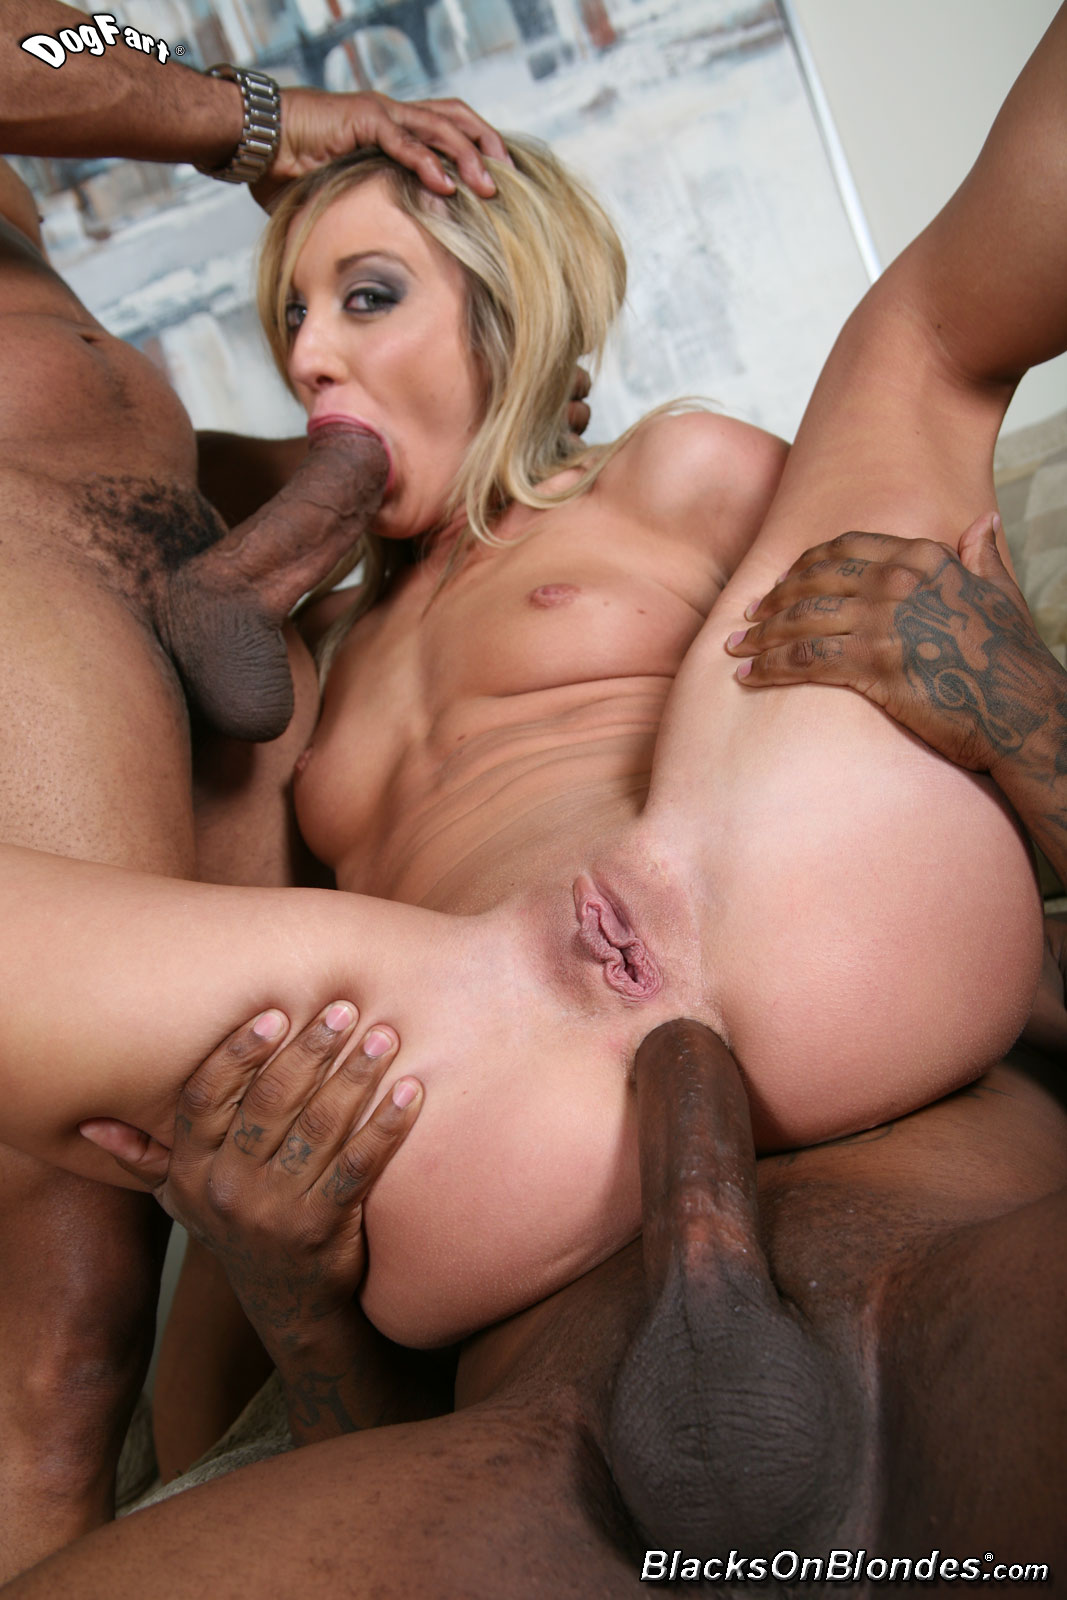 blacks on blondes porno maduraa